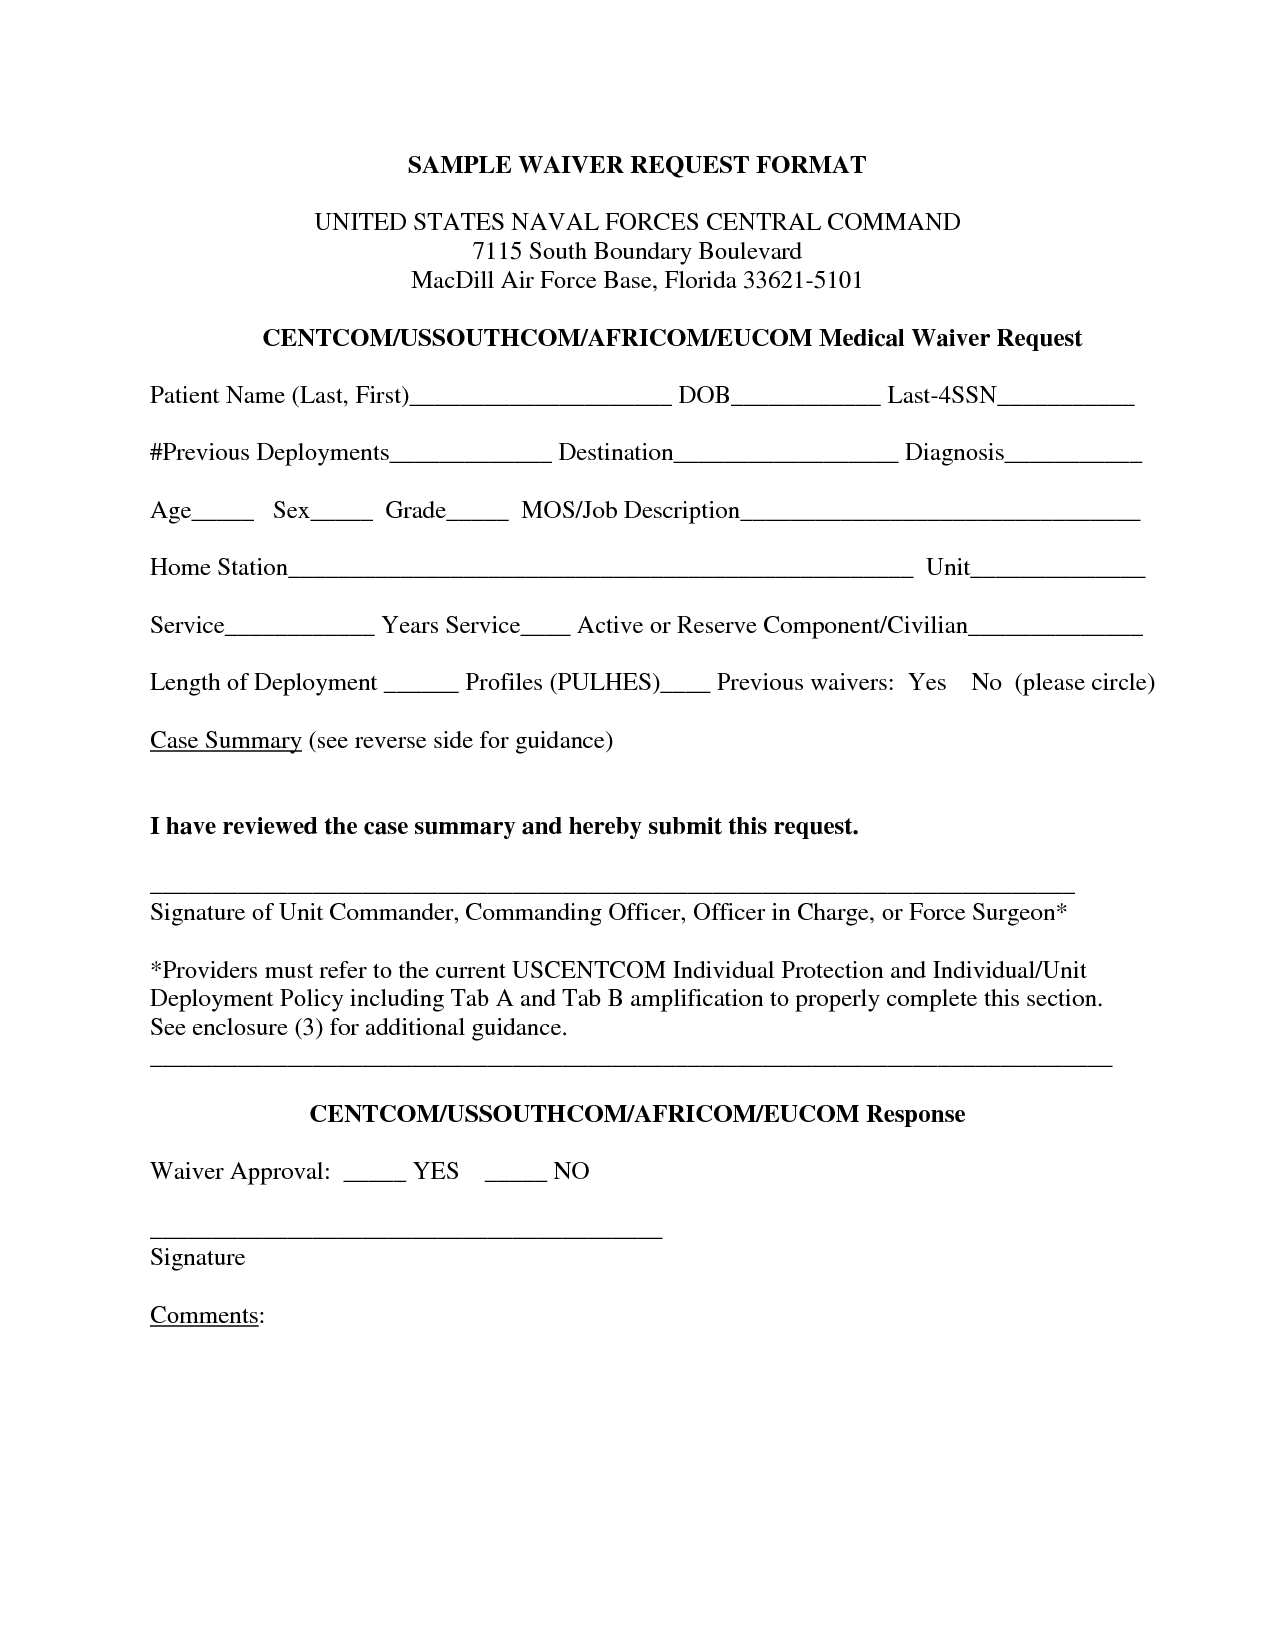 Sample Waiver Letter images - sample waiver form | Legal Documents ...